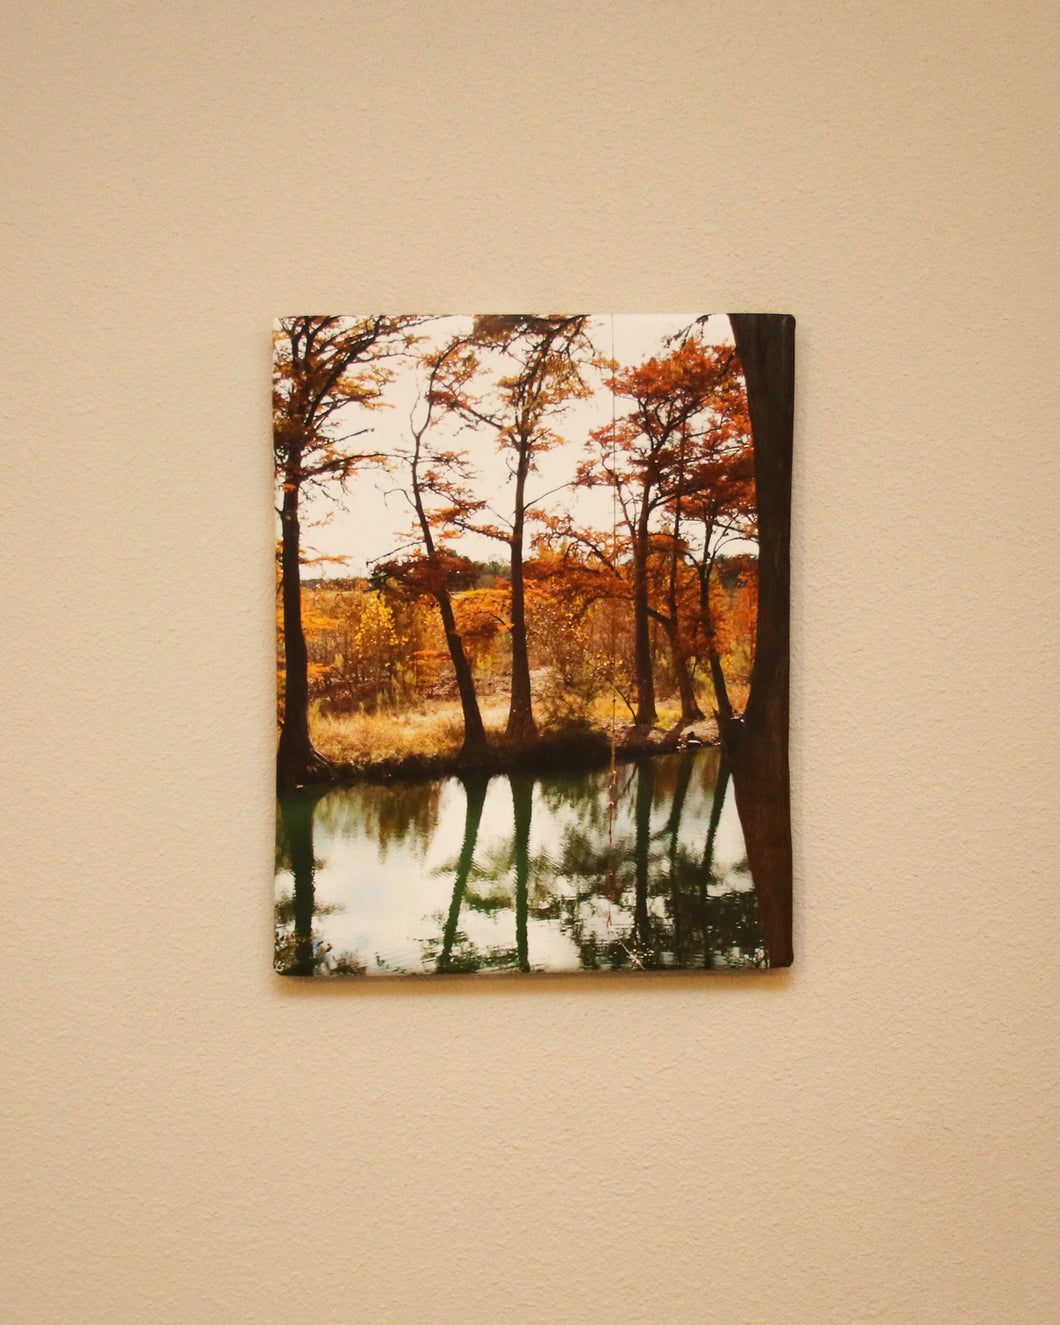 11x14 Gallery Wrap Canvas